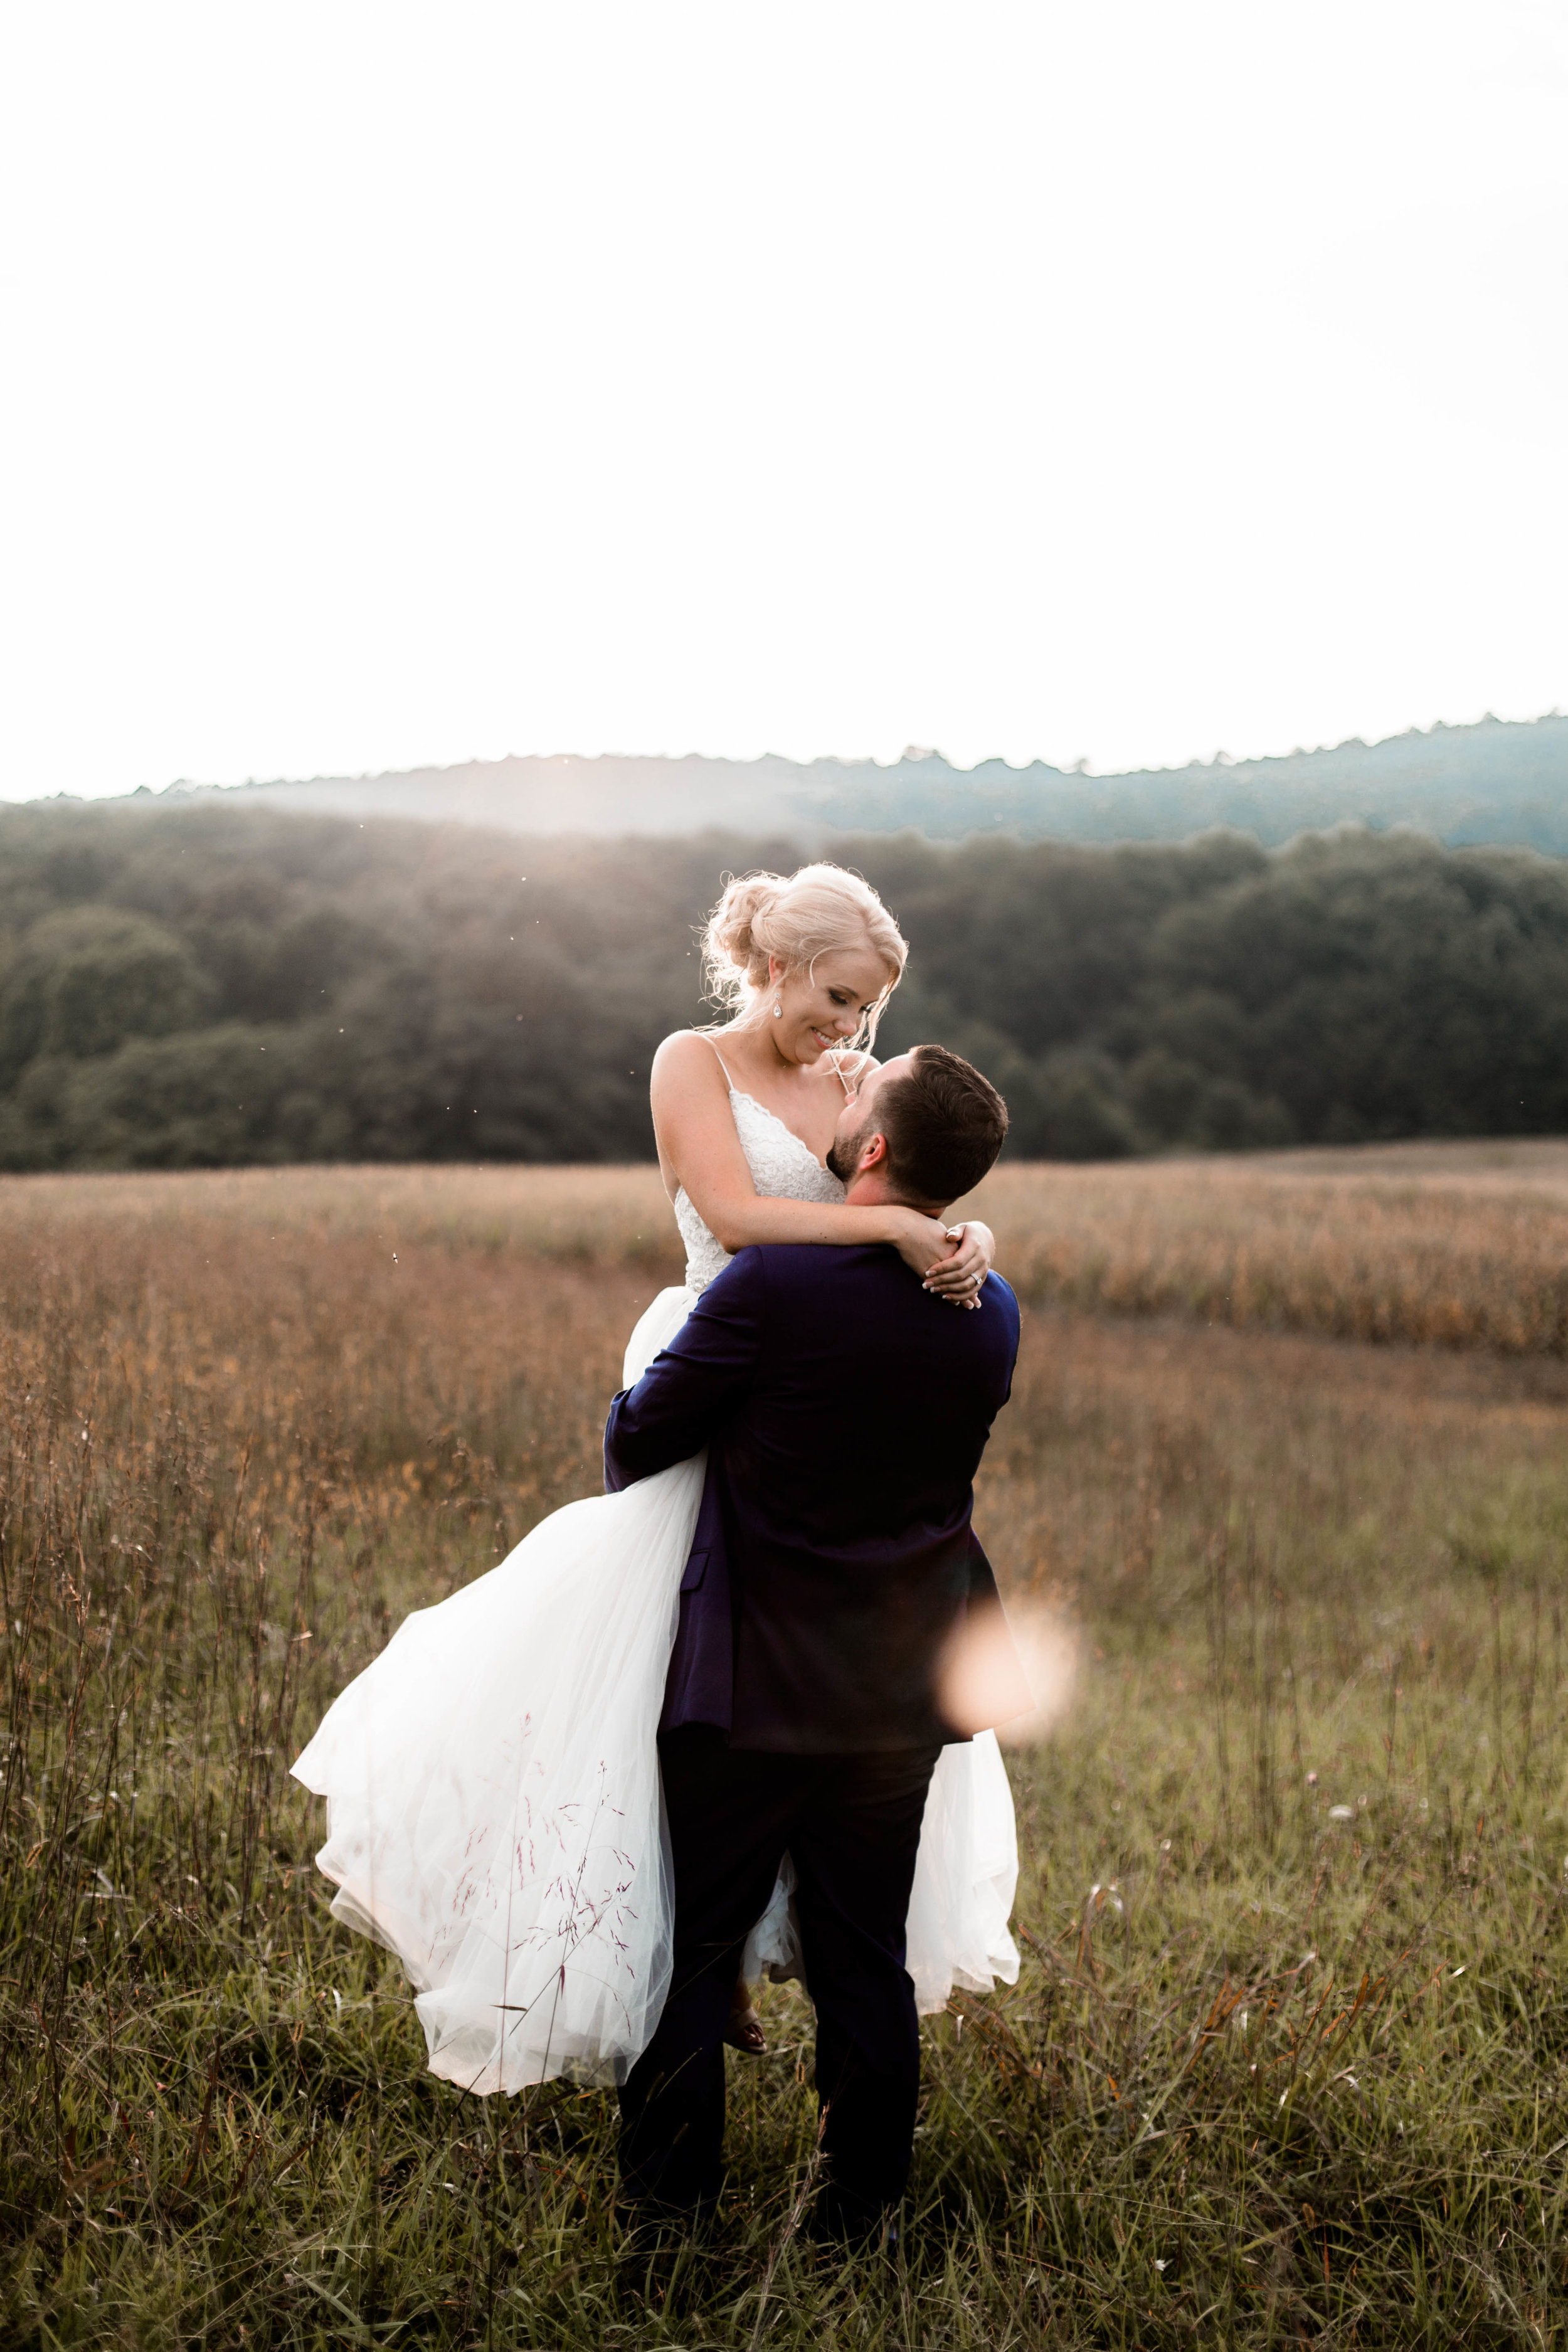 nicole-daacke-photography-intimate-wedding-in-a-lavender-field-washington-state-wedding-photographer-intimate-elopement-golden-lavender-field-wedding-photos-58.jpg